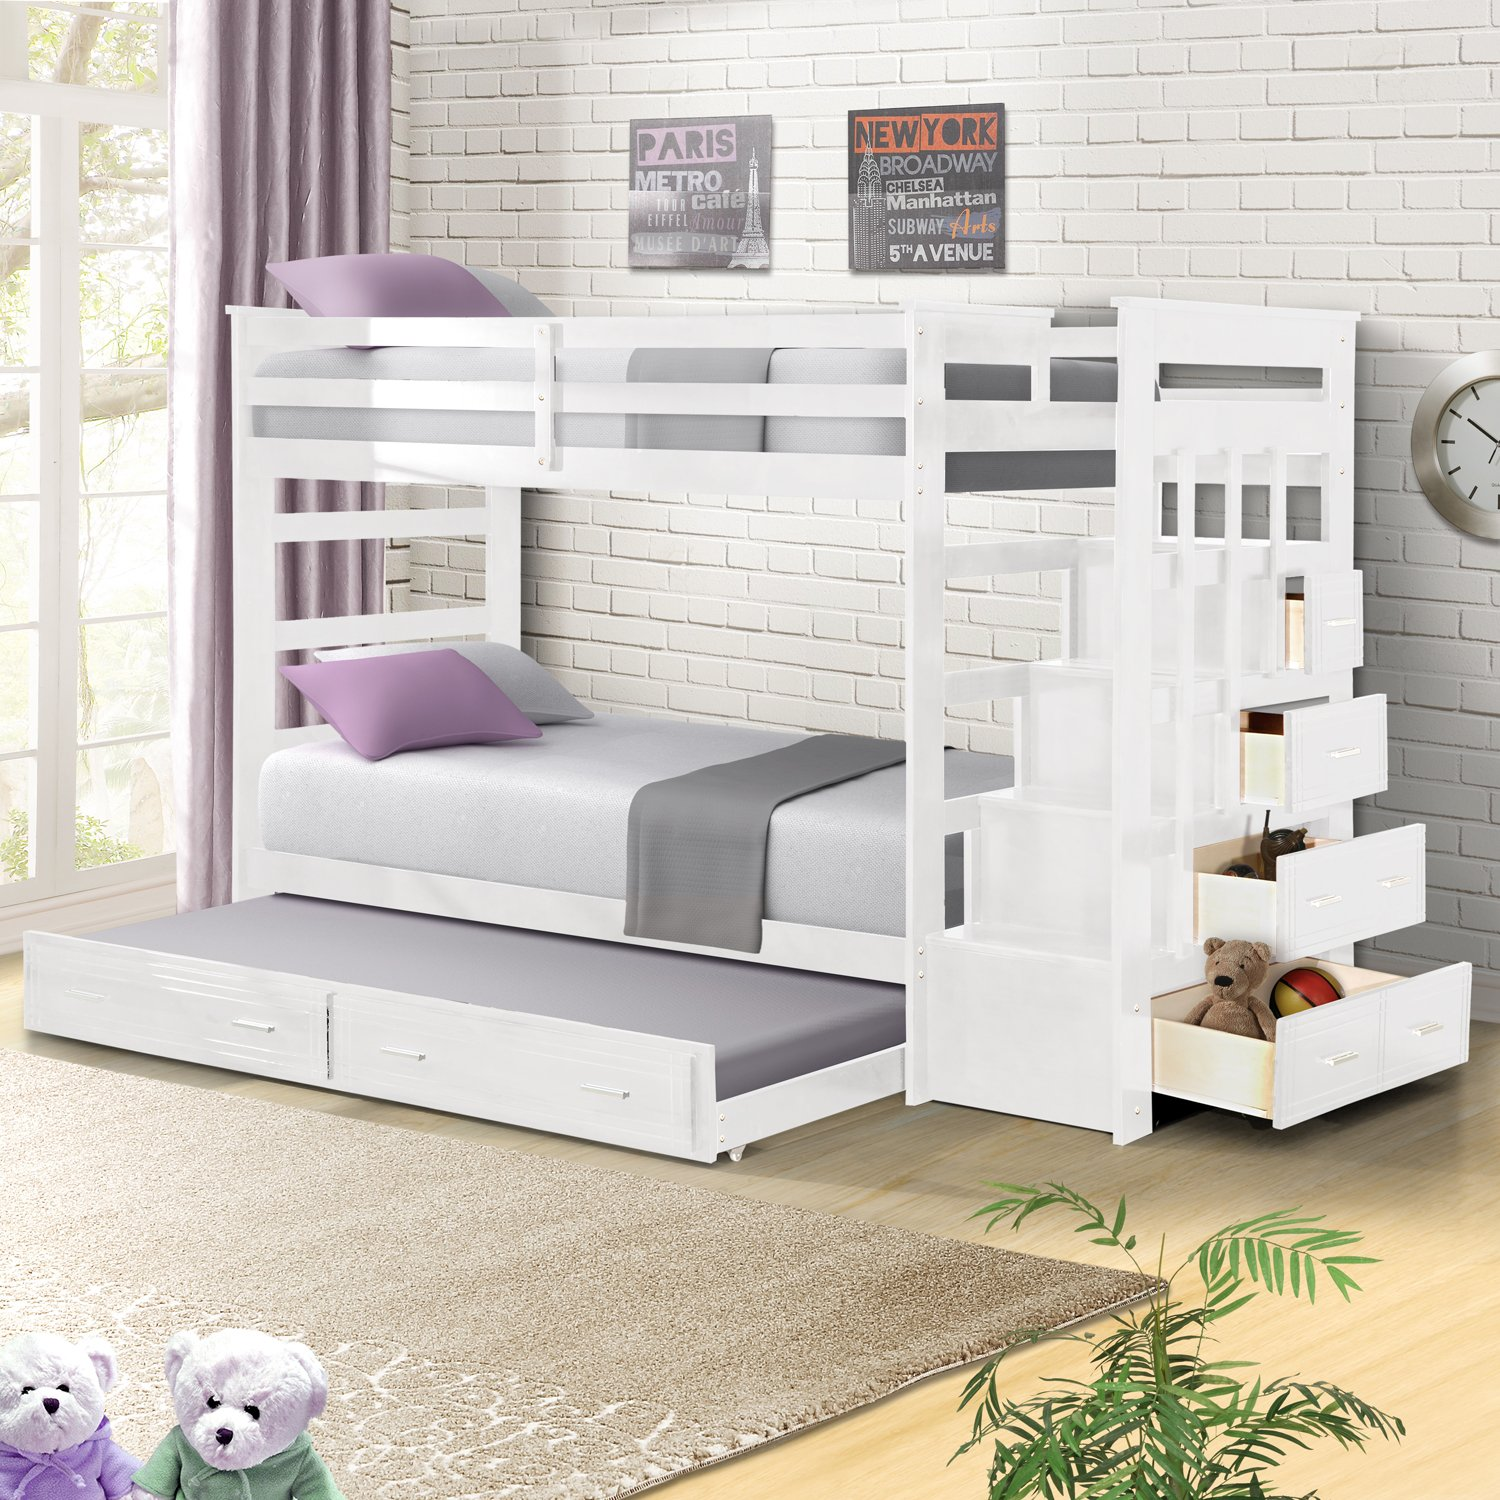 Harper&Bright Designs Bunk Bed with Trundle Captains Trundle Bunk Beds with Storage Drawers Twin Size (White)